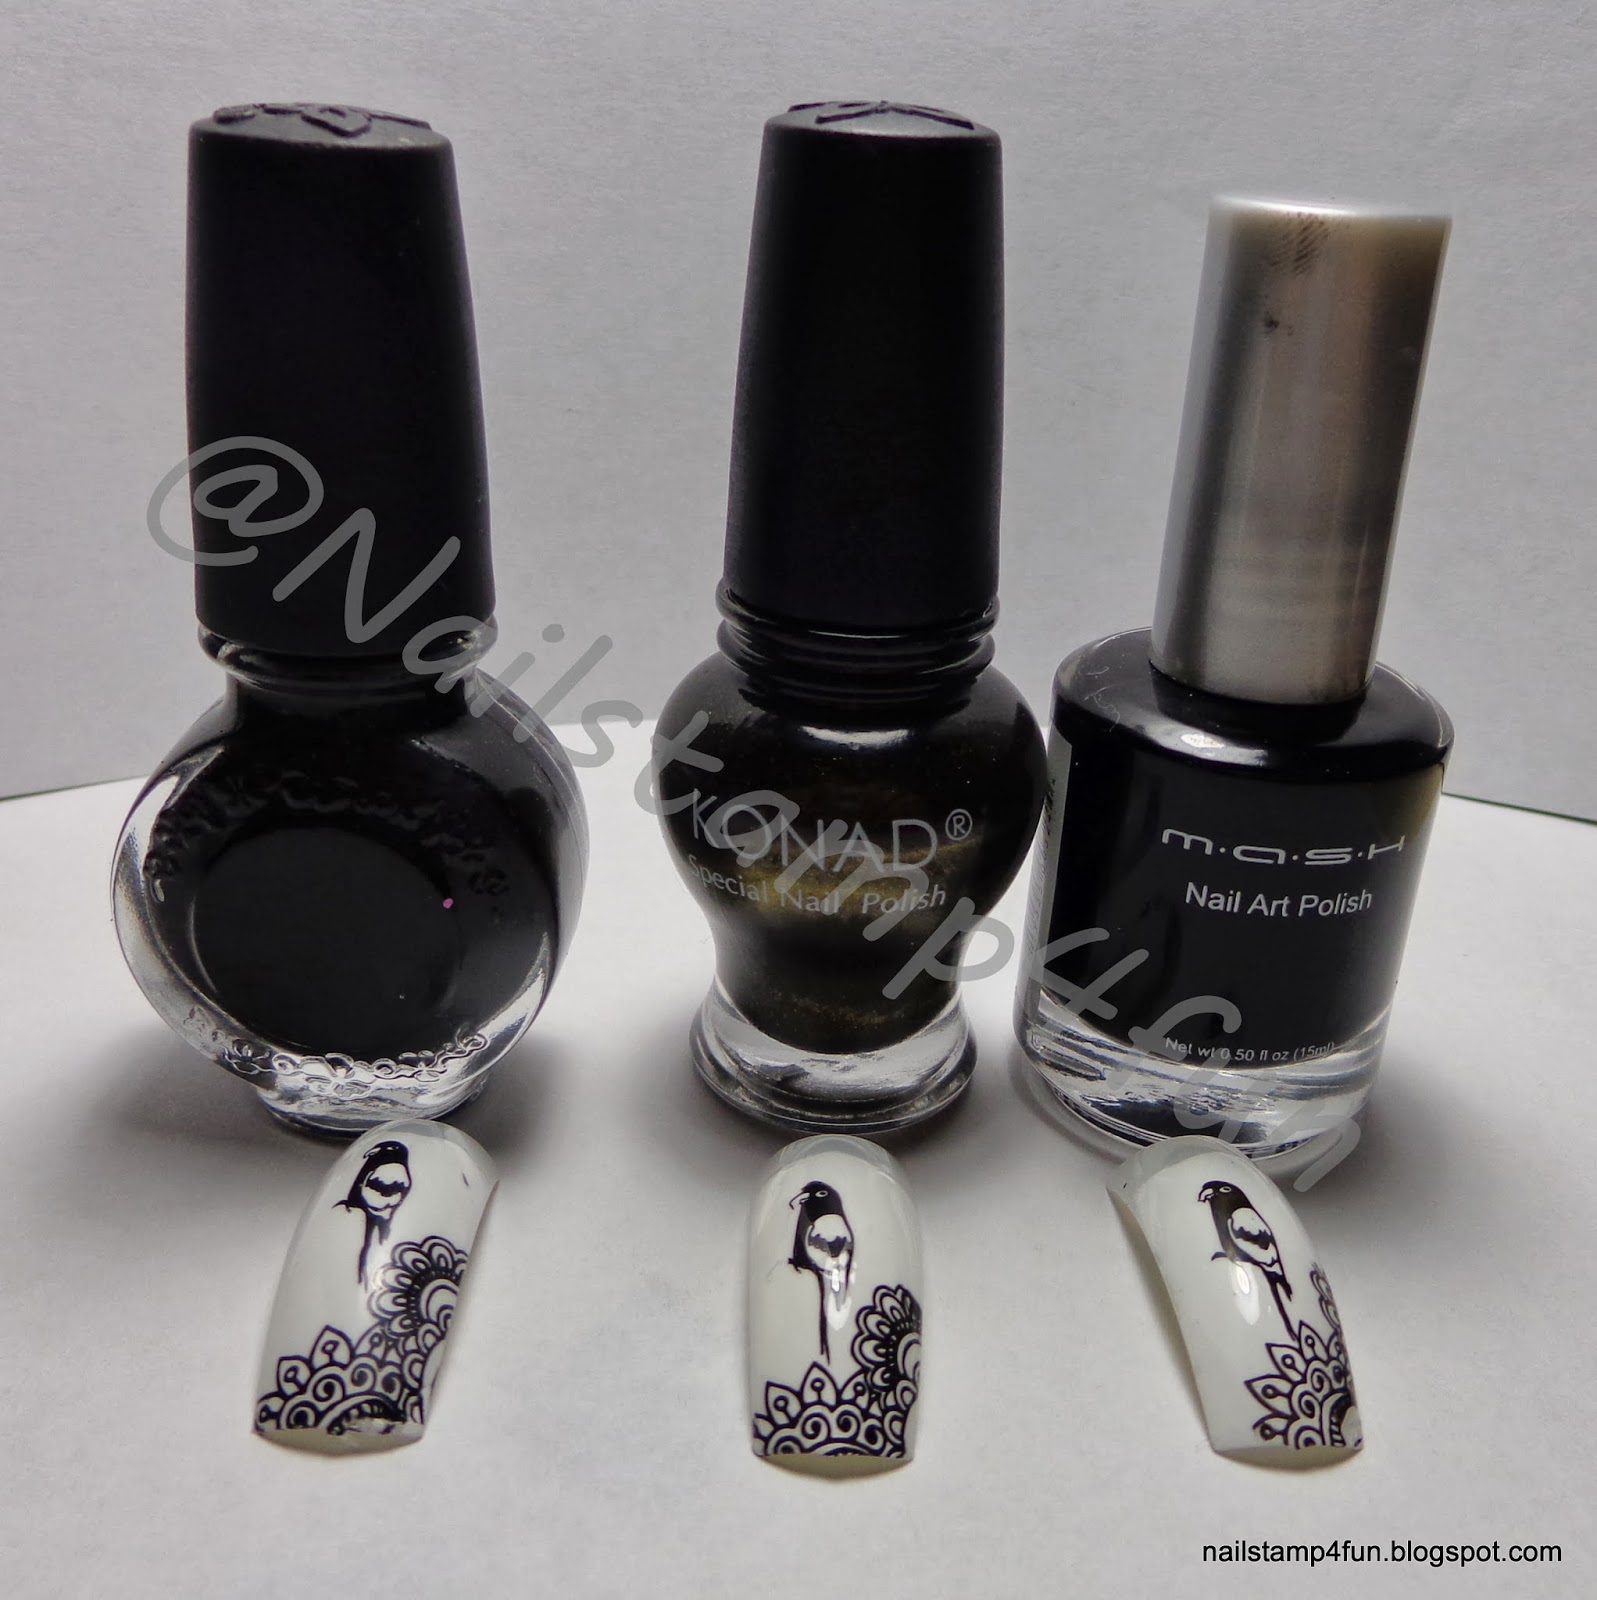 Nail Stamp 4 Fun Swatches Of Black White Nail Stamping Polishes